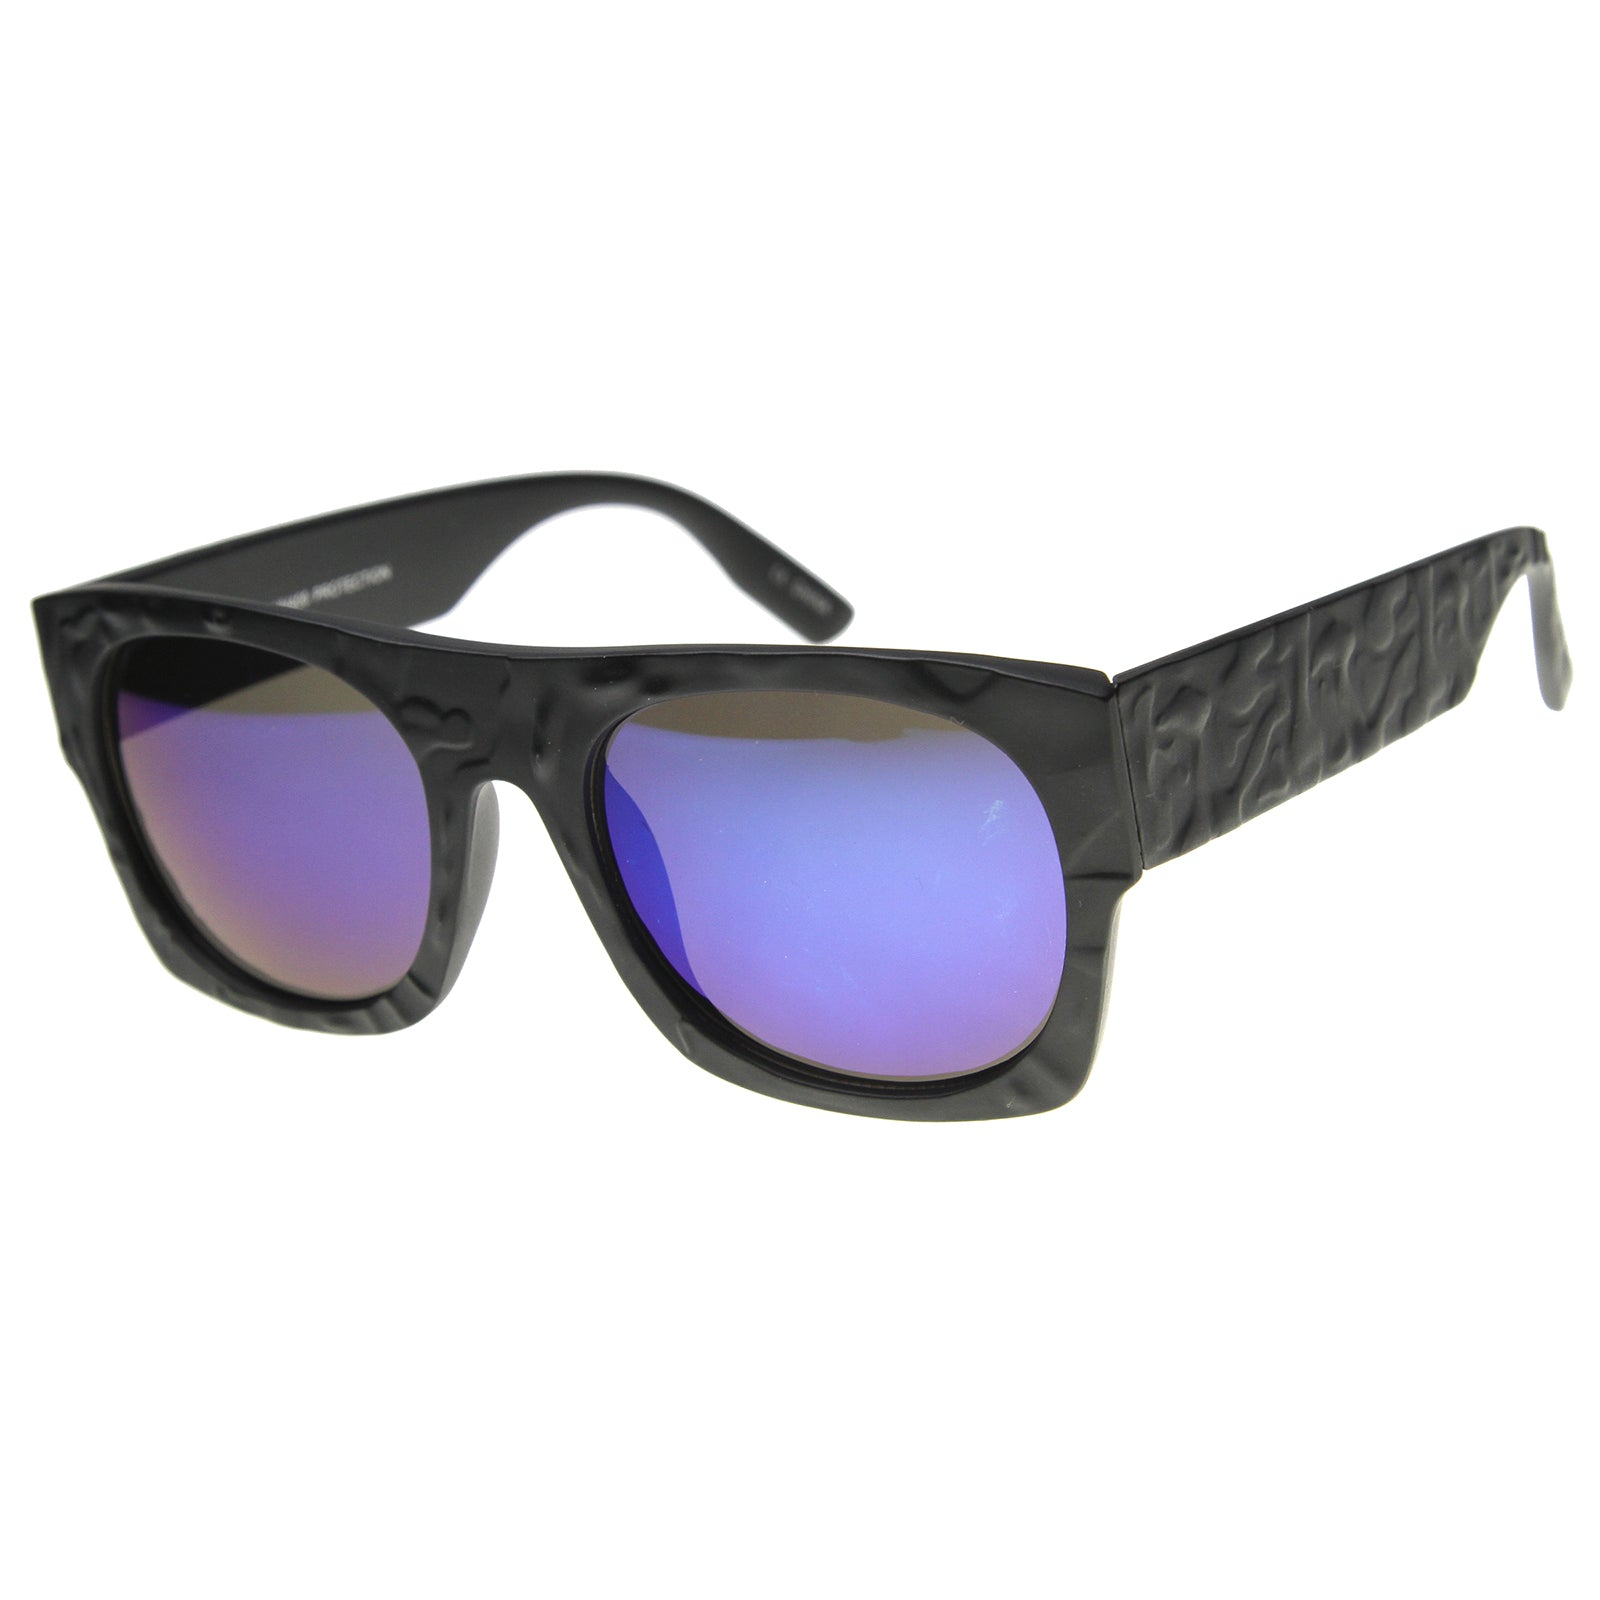 Unisex Rectangular Sunglasses With UV400 Protected Mirrored Lens - sunglass.la - 4